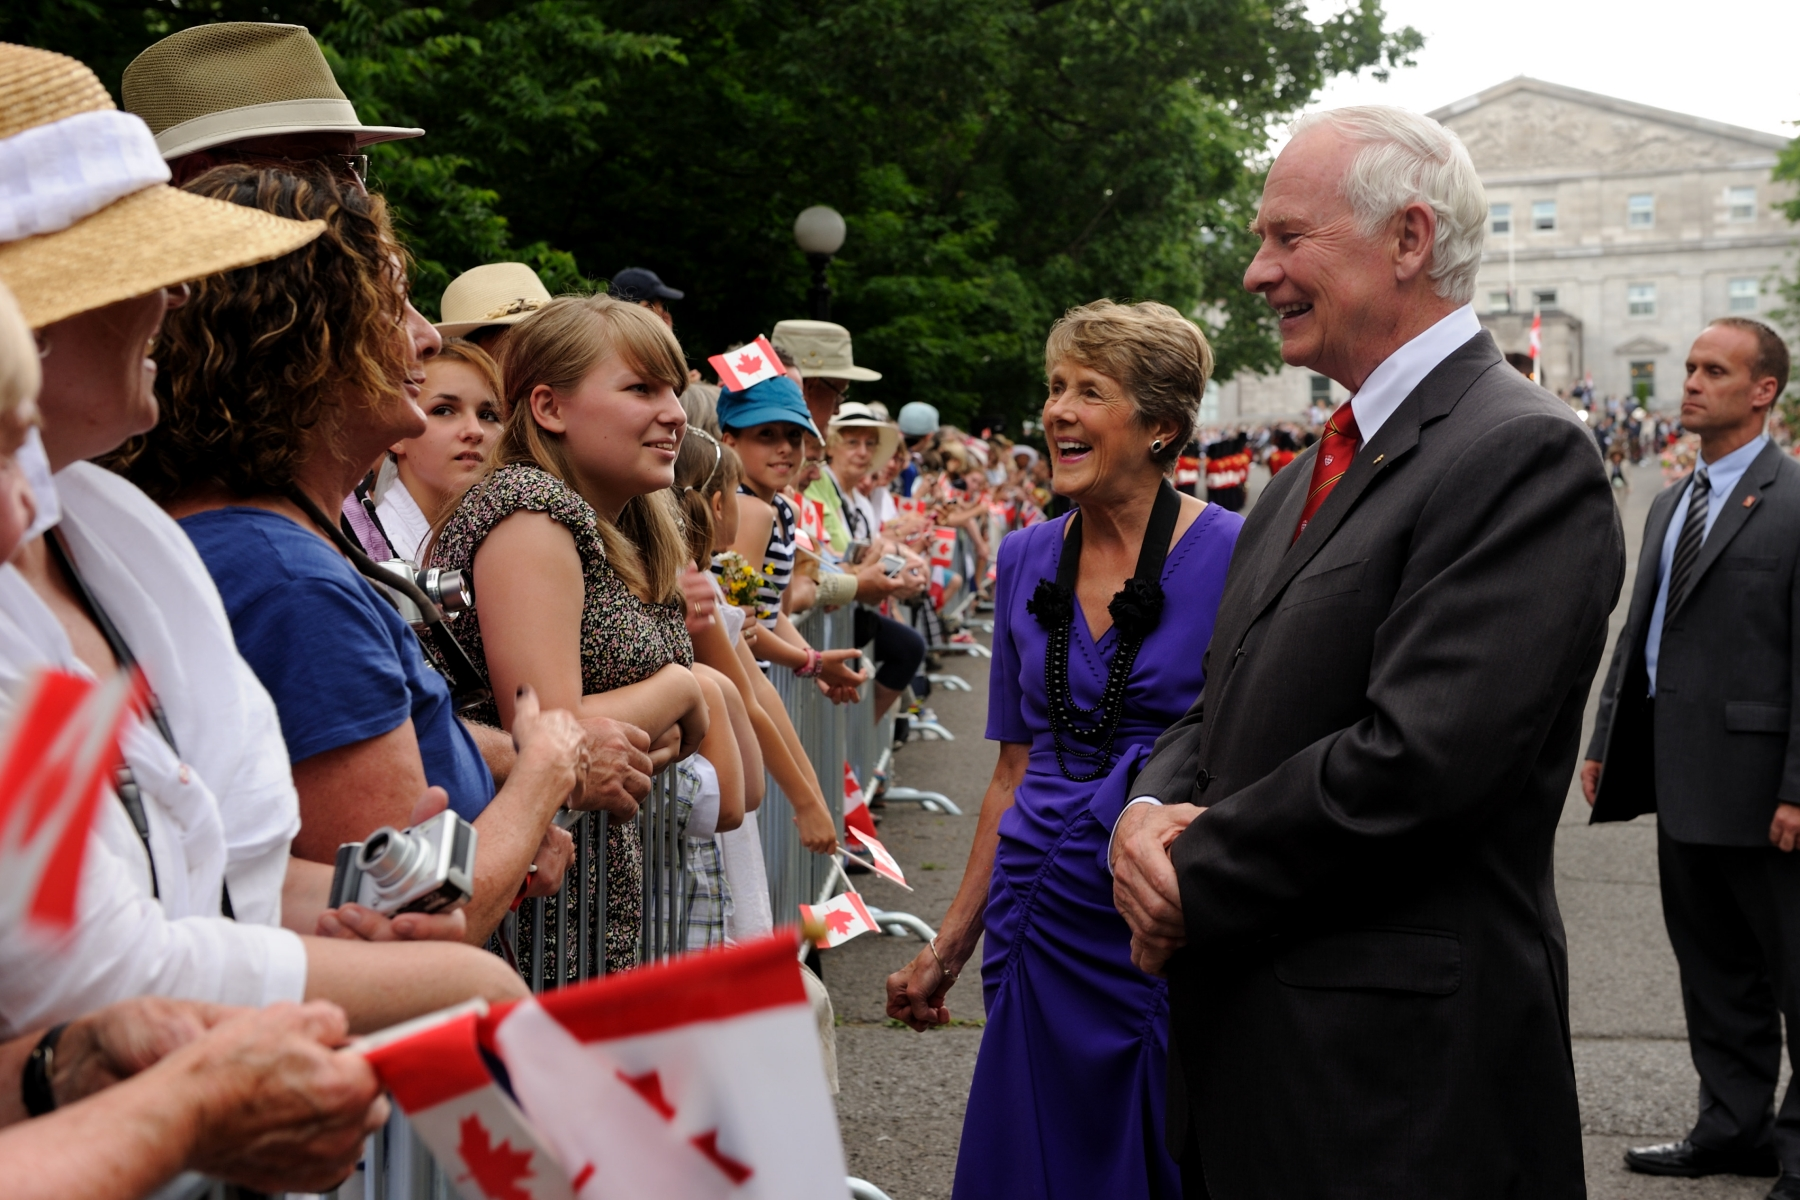 Prior to Their Royal Highnesses' arrival, Their Excellencies the Right Honourable David Johnston, Governor General of Canada, and Mrs. Sharon Johnston met with Canadians who were on the grounds to welcome the Royal couple.